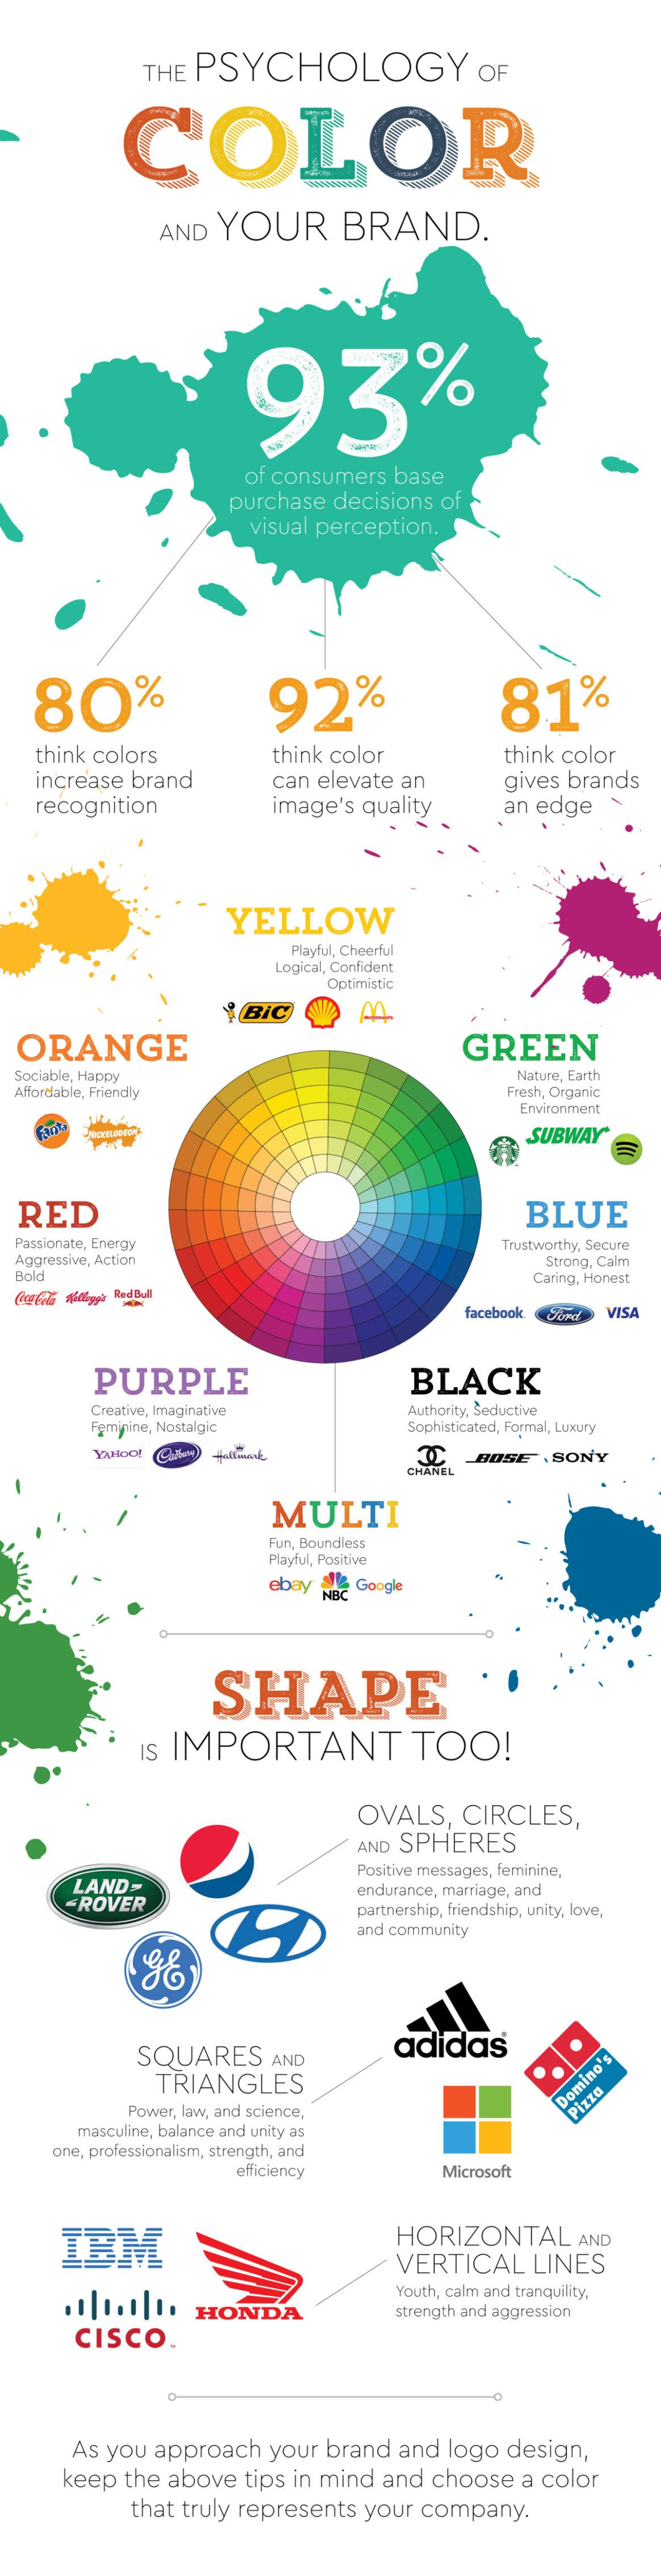 The Psychology of Colors in Logo and Brand Design